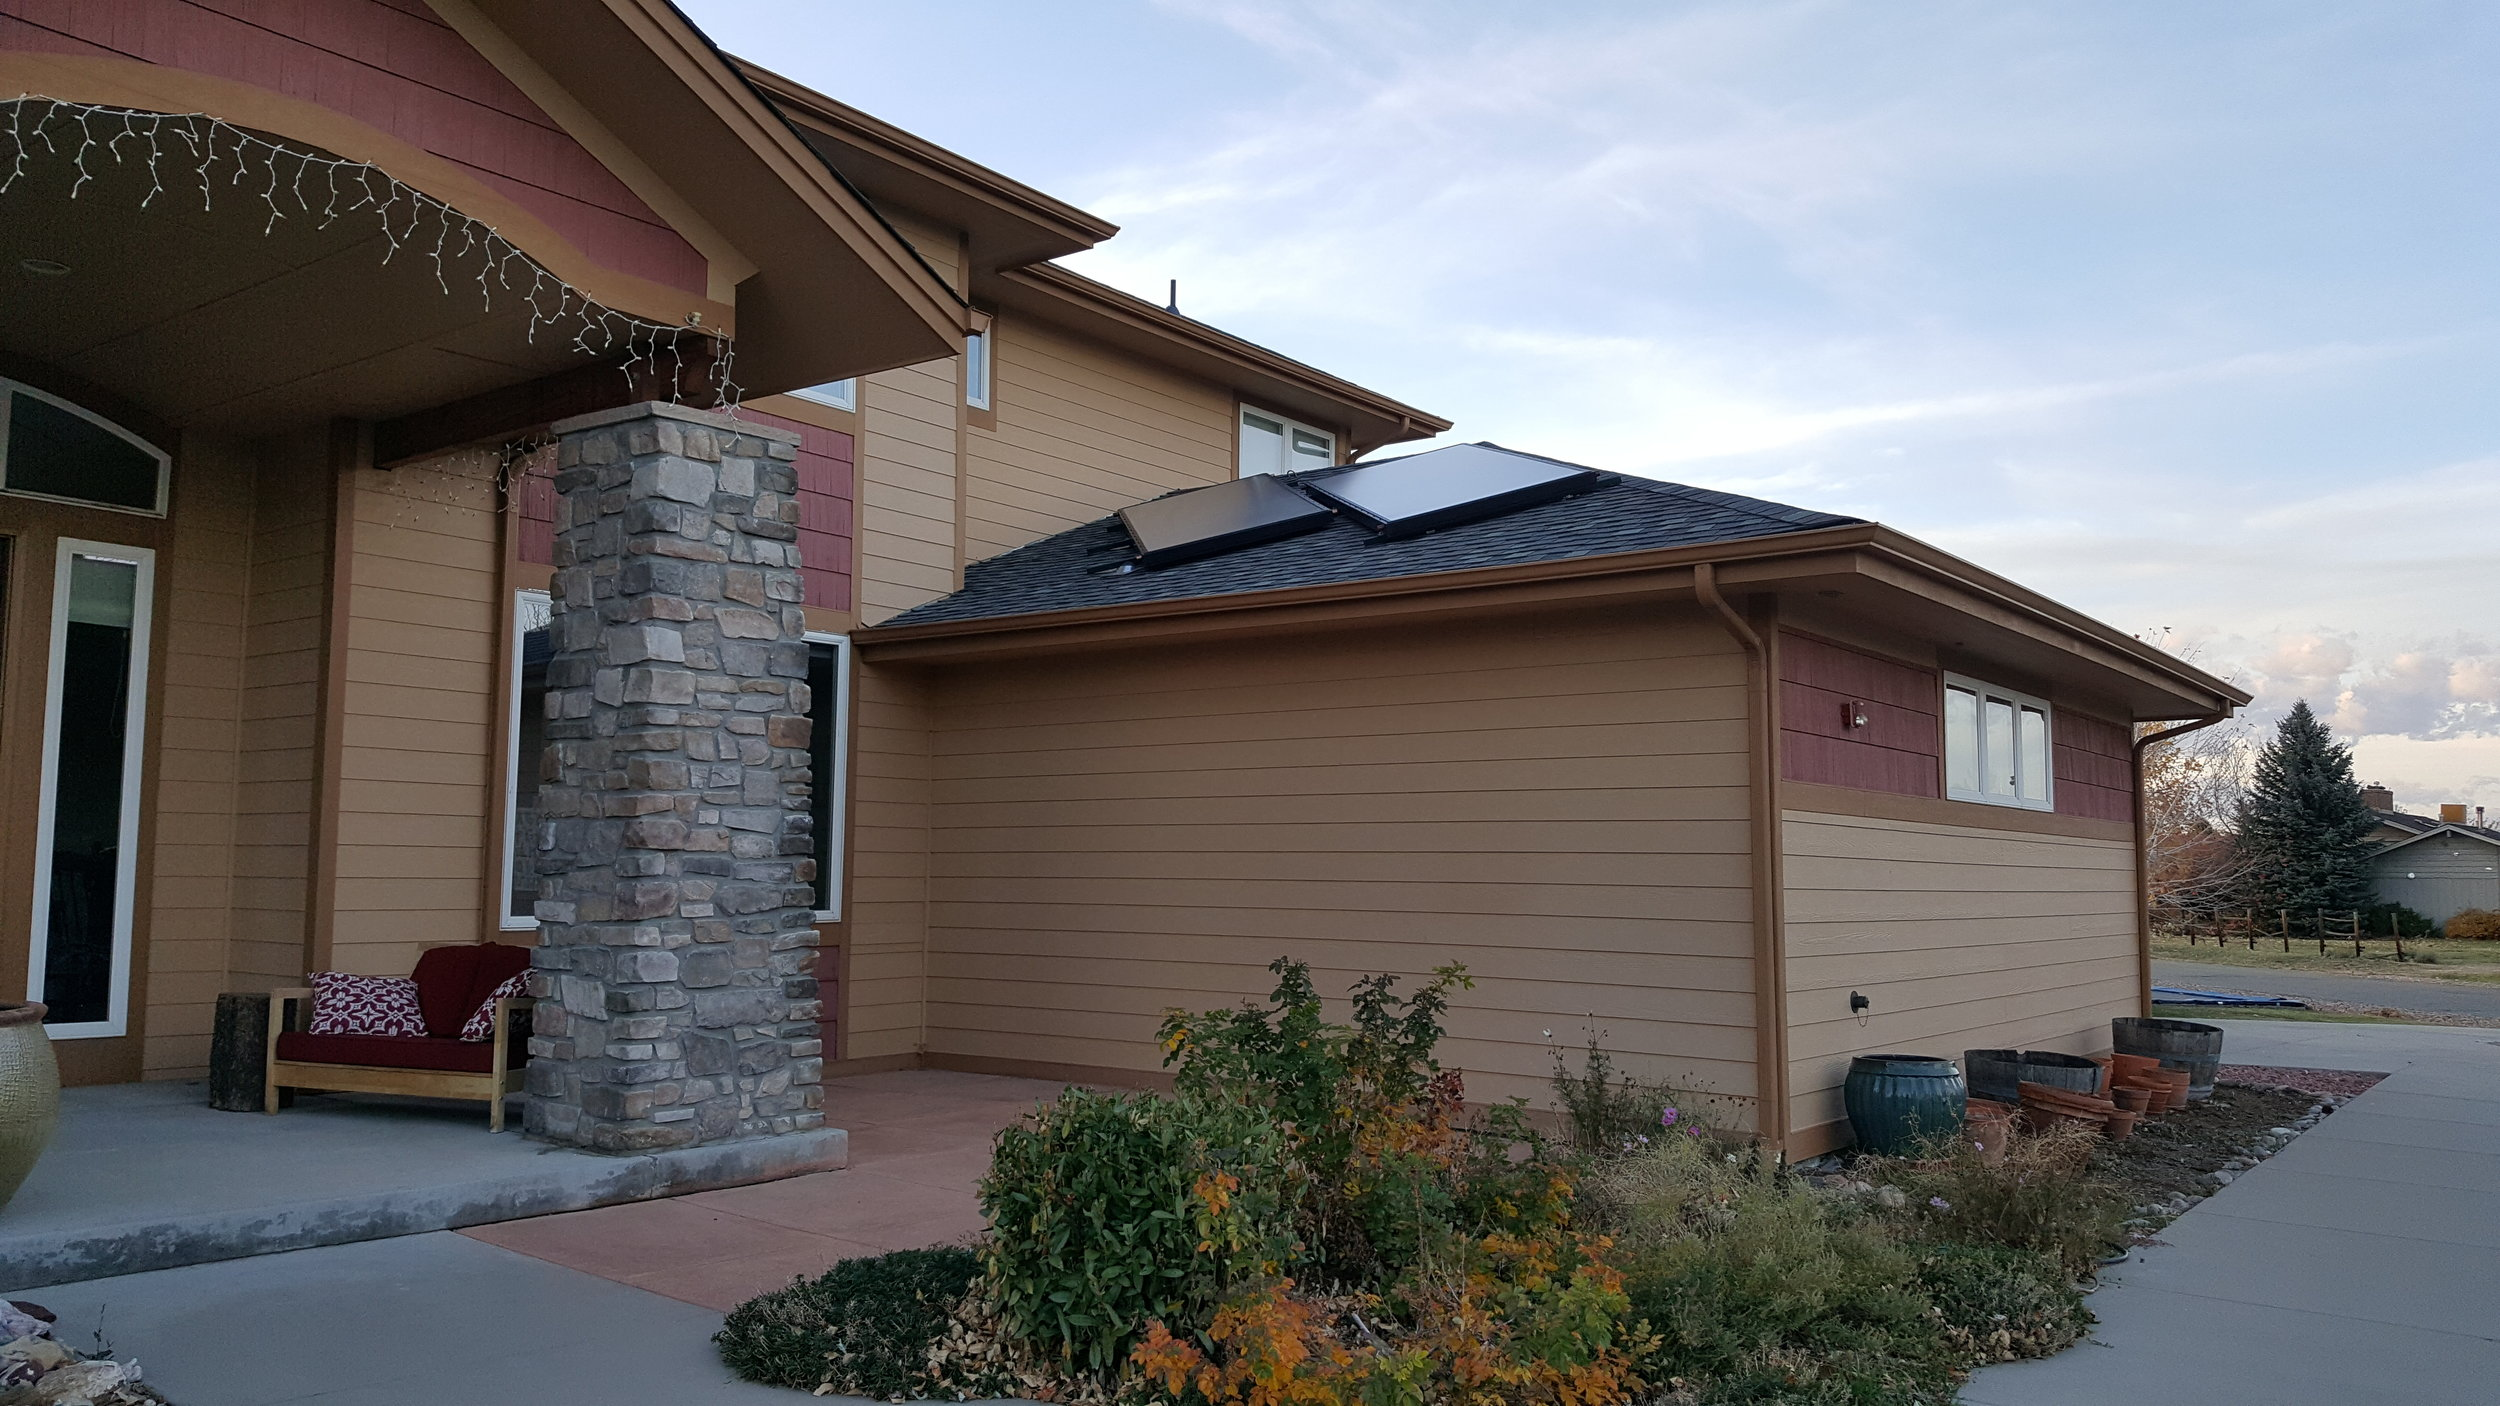 Flush mounted, offset & piped in series solar thermal array in Boulder, Colorado